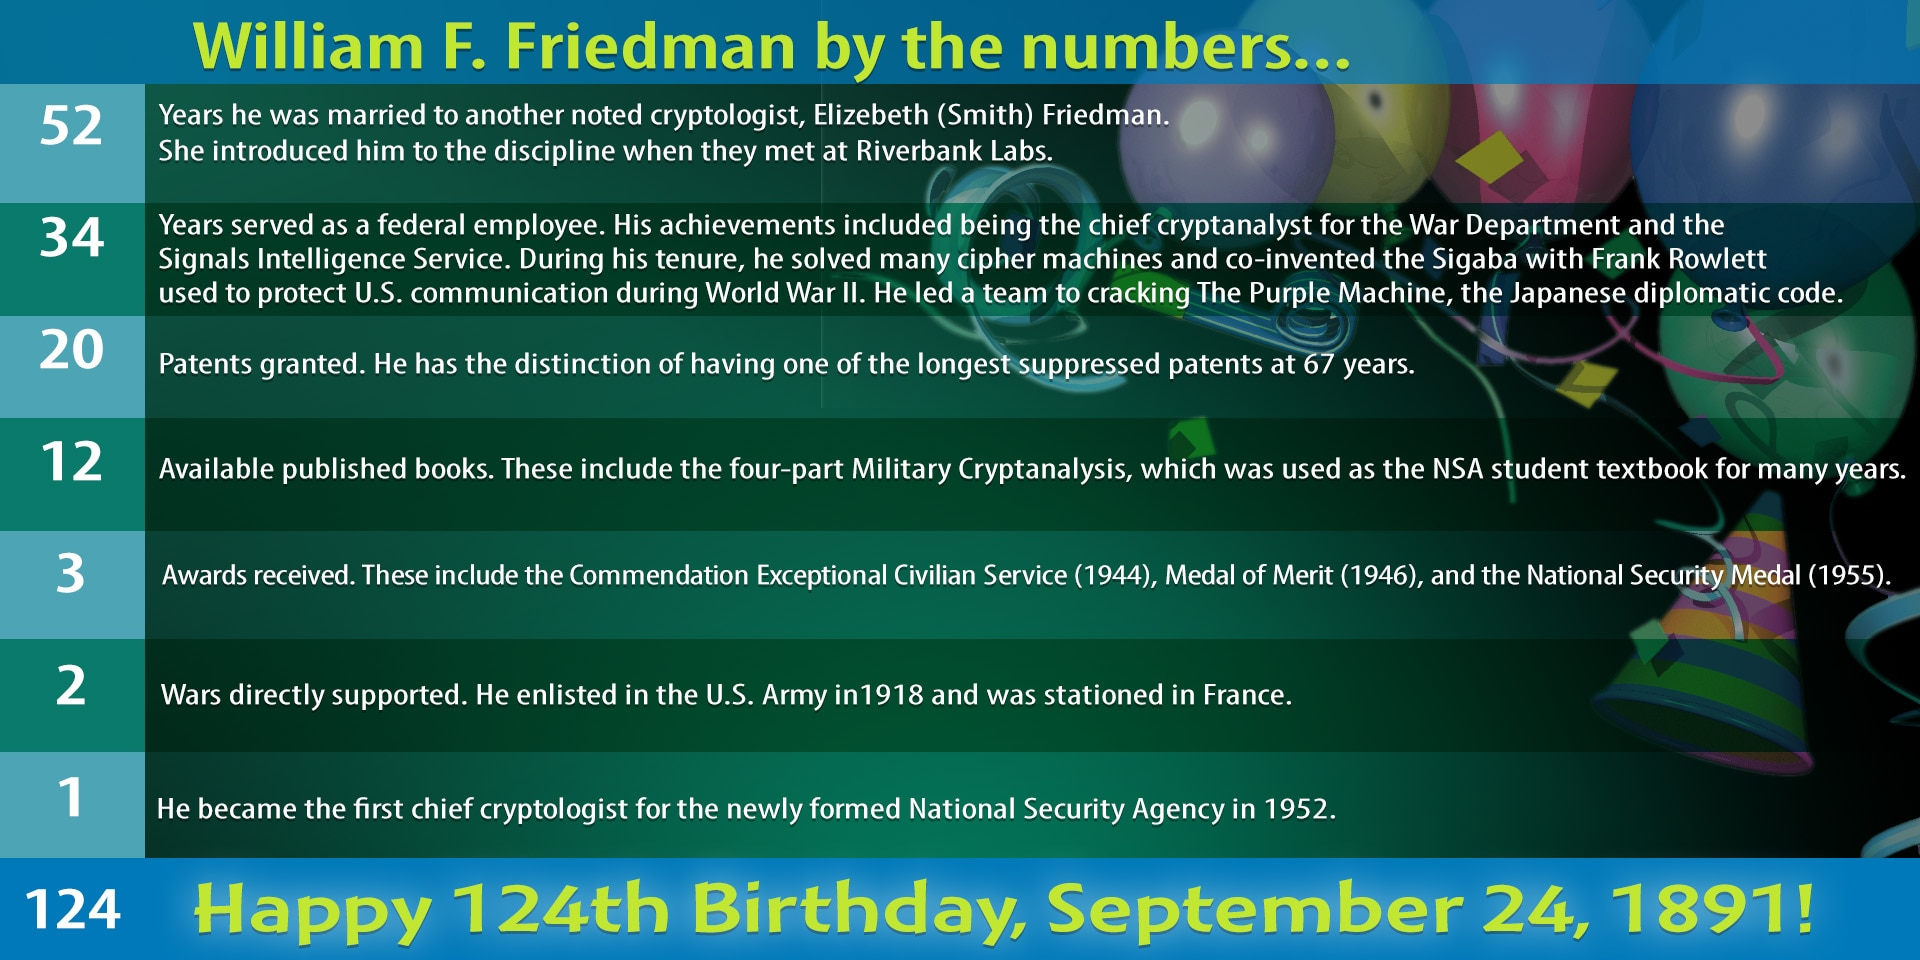 Infographic - William F. Friedman by the numbers